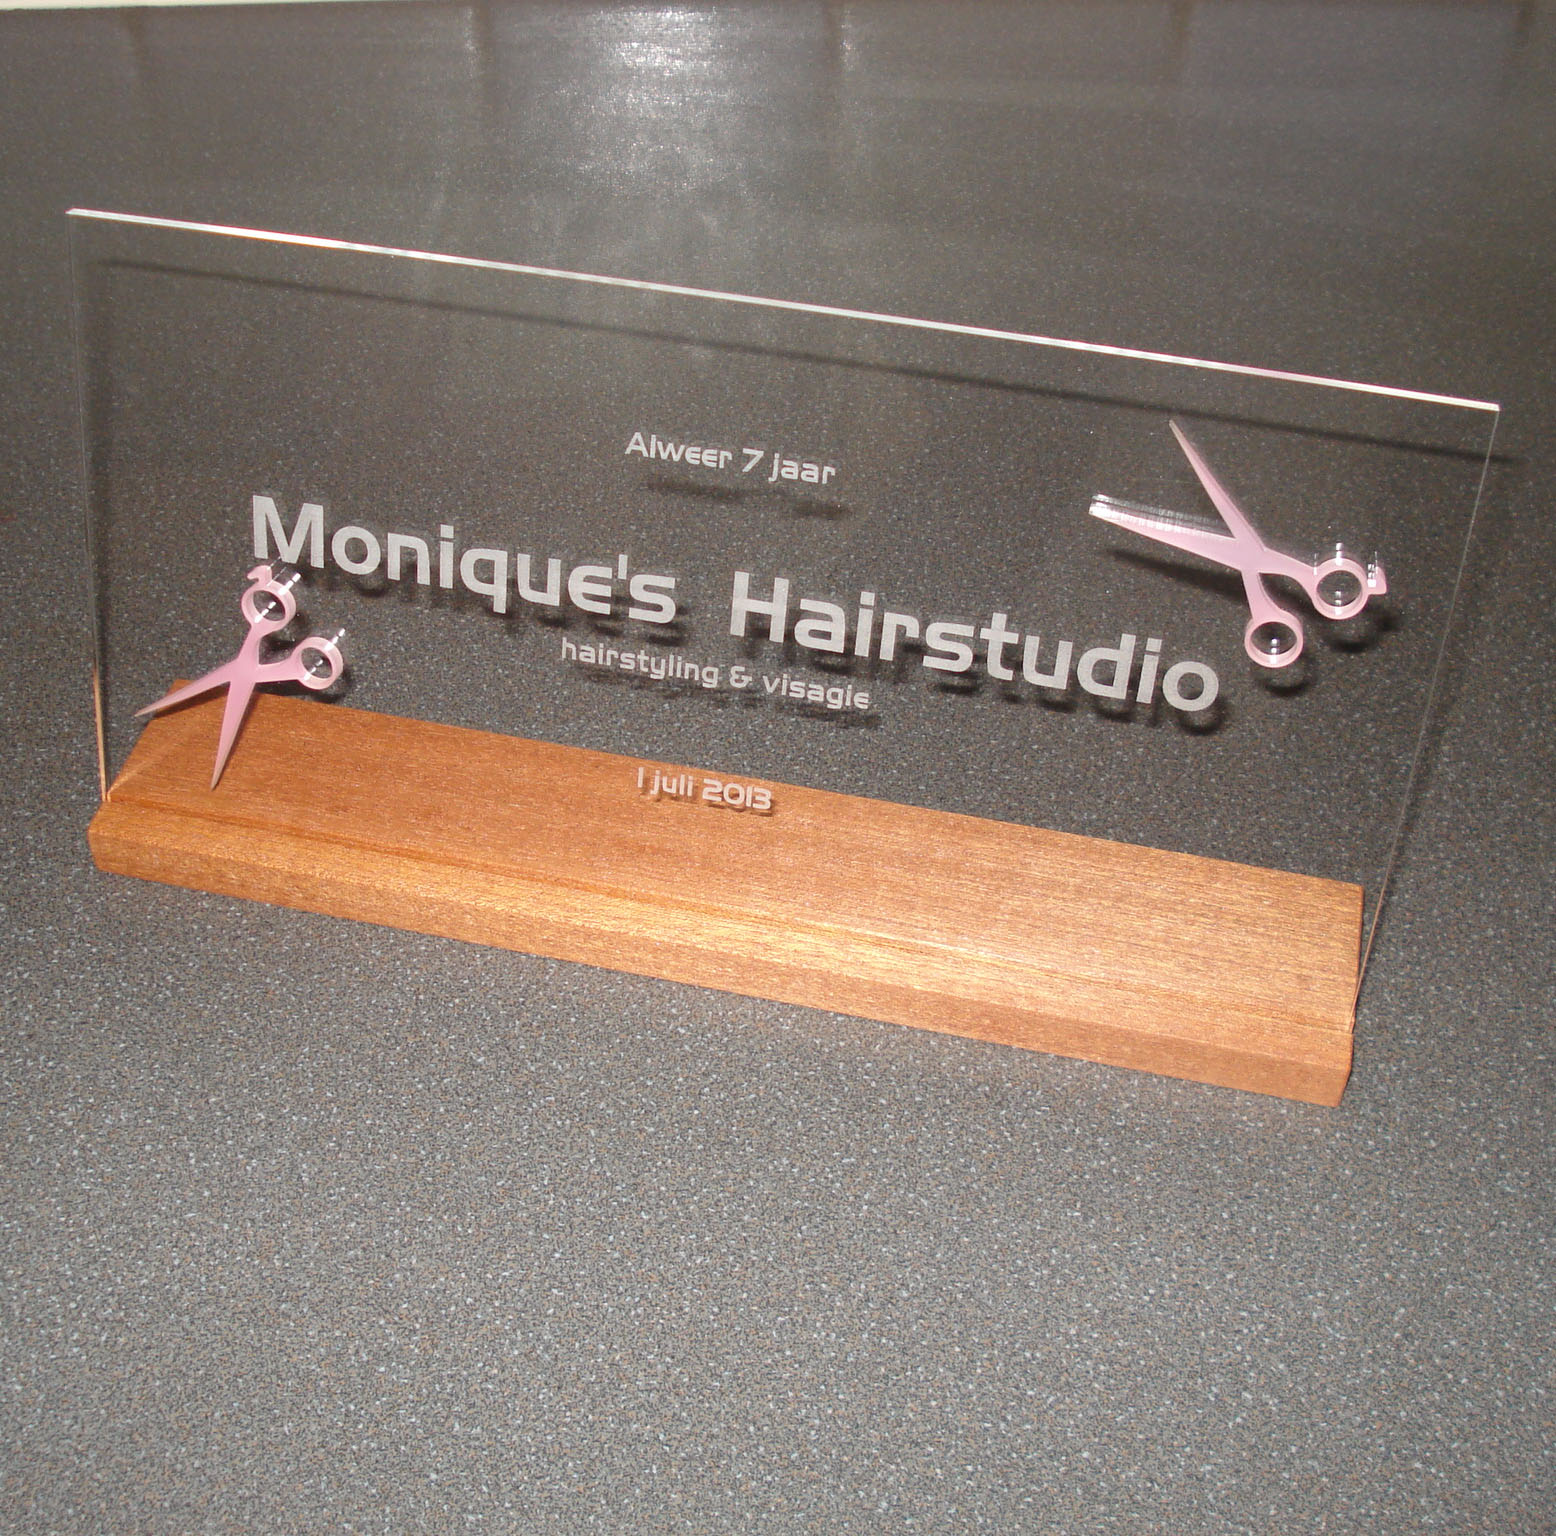 moniques-hairstudio-jpg